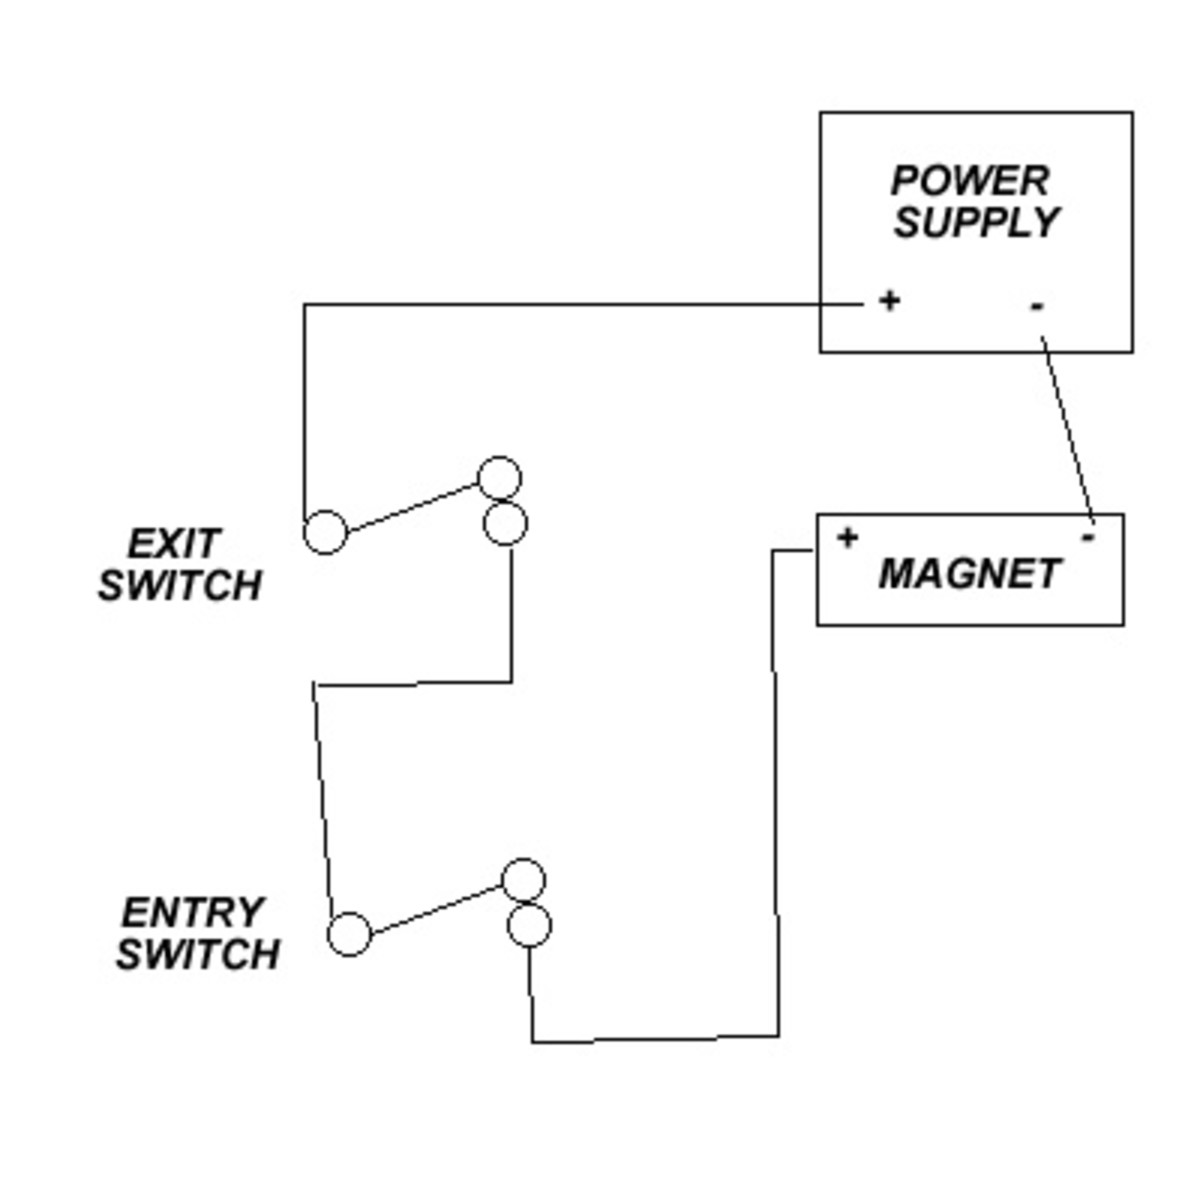 532038 basic magnetic door lock system hubpages locknetics maglock wiring diagram at edmiracle.co